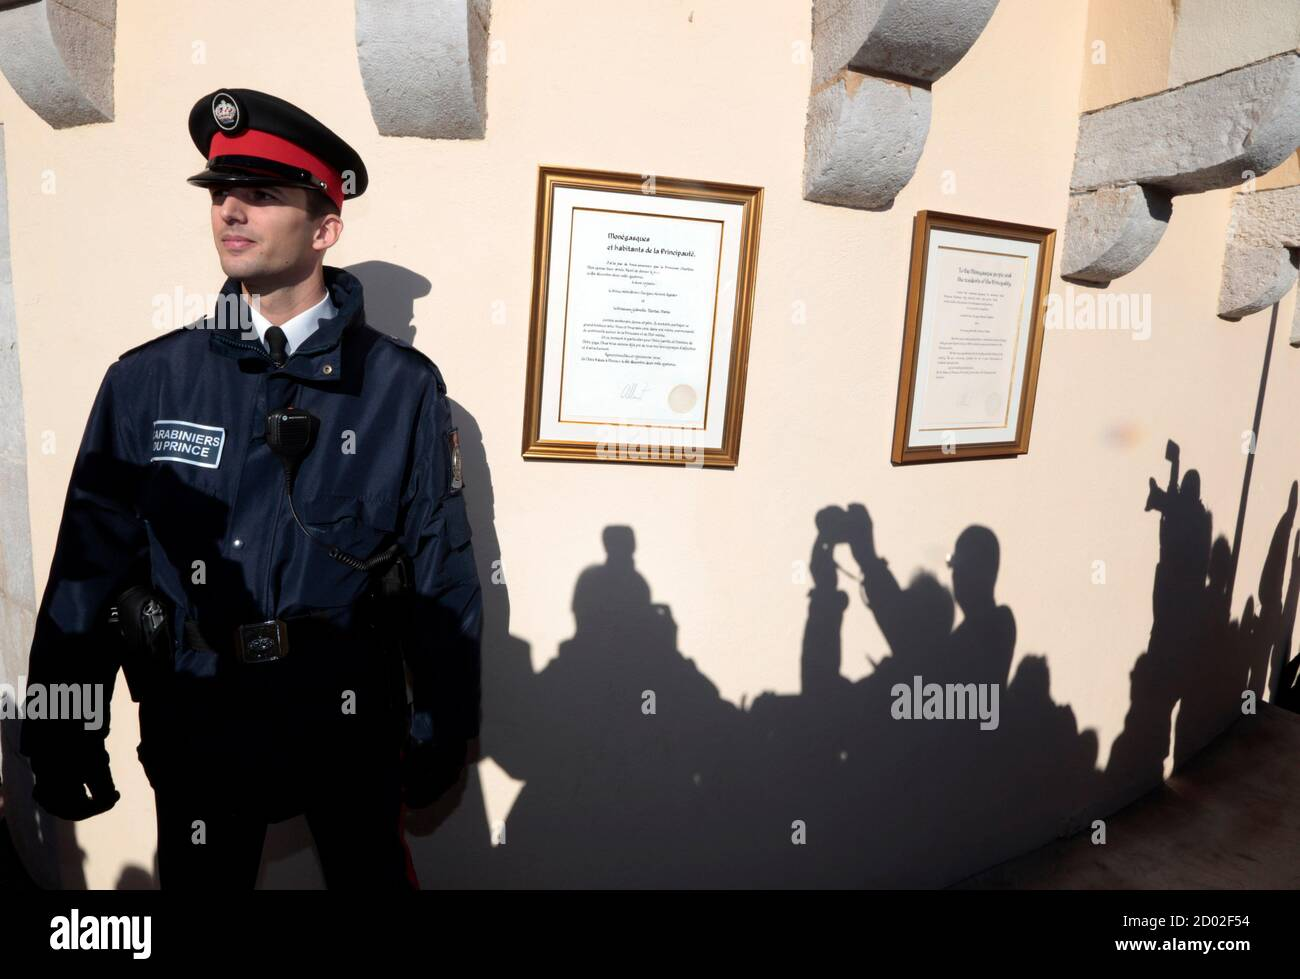 Shadows of photographers are cast on the wall near a carabinieri who stands next to the official declaration of Prince Albert II announcing the birth of twins to the Prince and Princess Charlene, at Monaco Palace December 11, 2014. Princess Charlene of Monaco gave birth on Wednesday to a boy and a girl, the royal couple's first children, an aide to the royals said. According to Monaco's Constitution the boy, named Jacques, will be first-in-line to the throne, and not his twin sister, Gabriella.  REUTERS/Eric Gaillard (MONACO - Tags: ROYALS ENTERTAINMENT) Banque D'Images